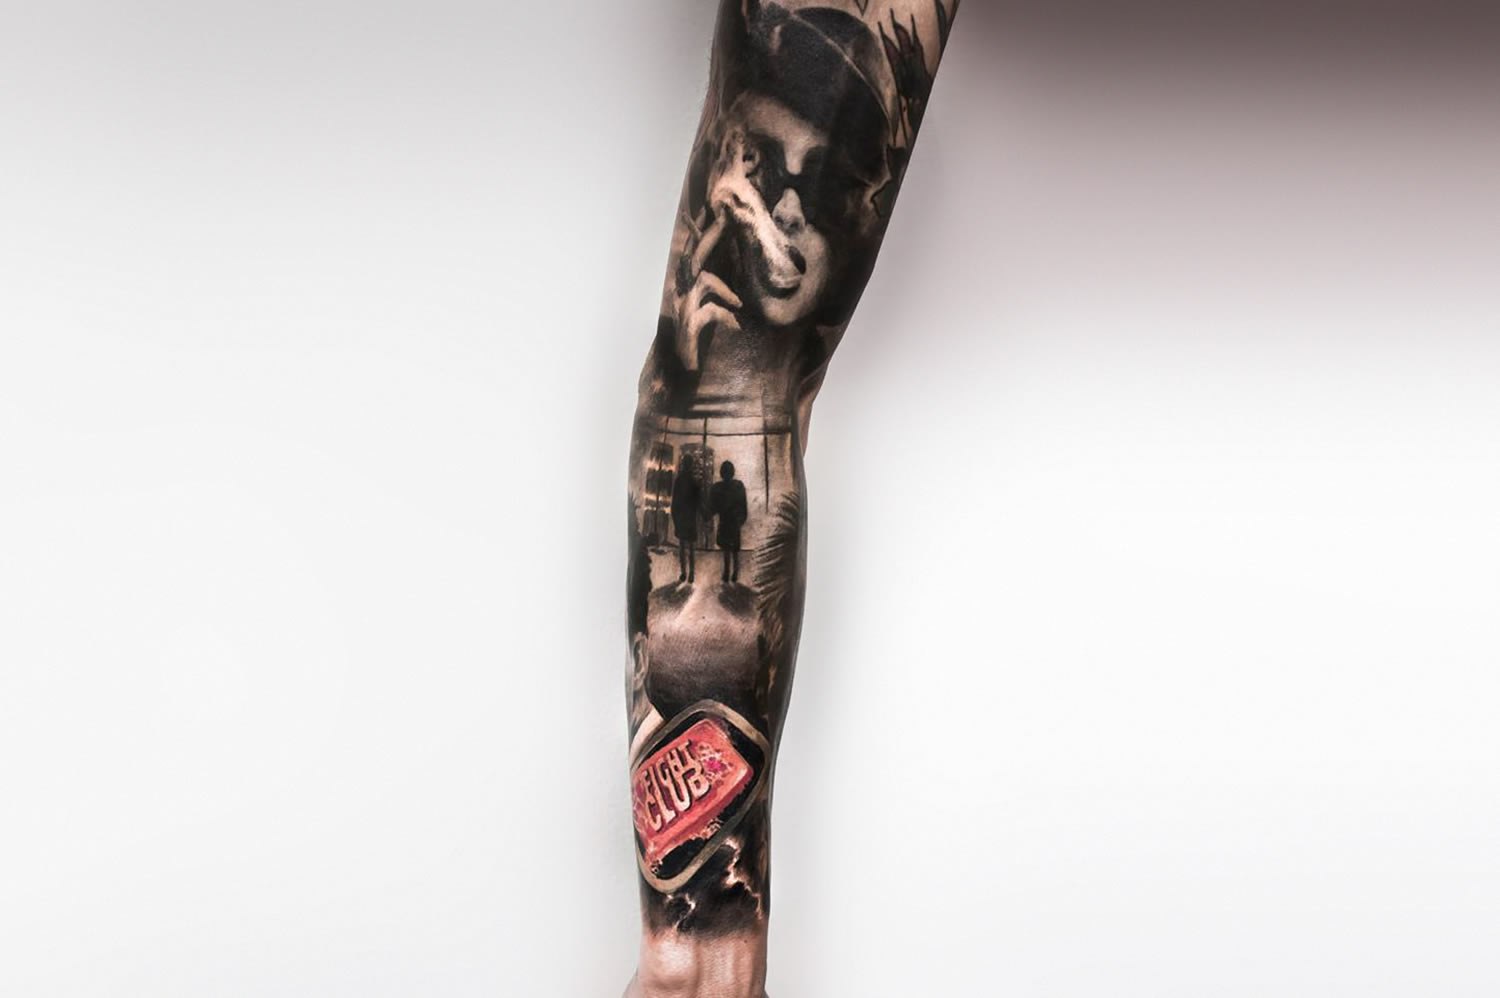 fight club marla and soap tattoo sleeve  by paolo murtas